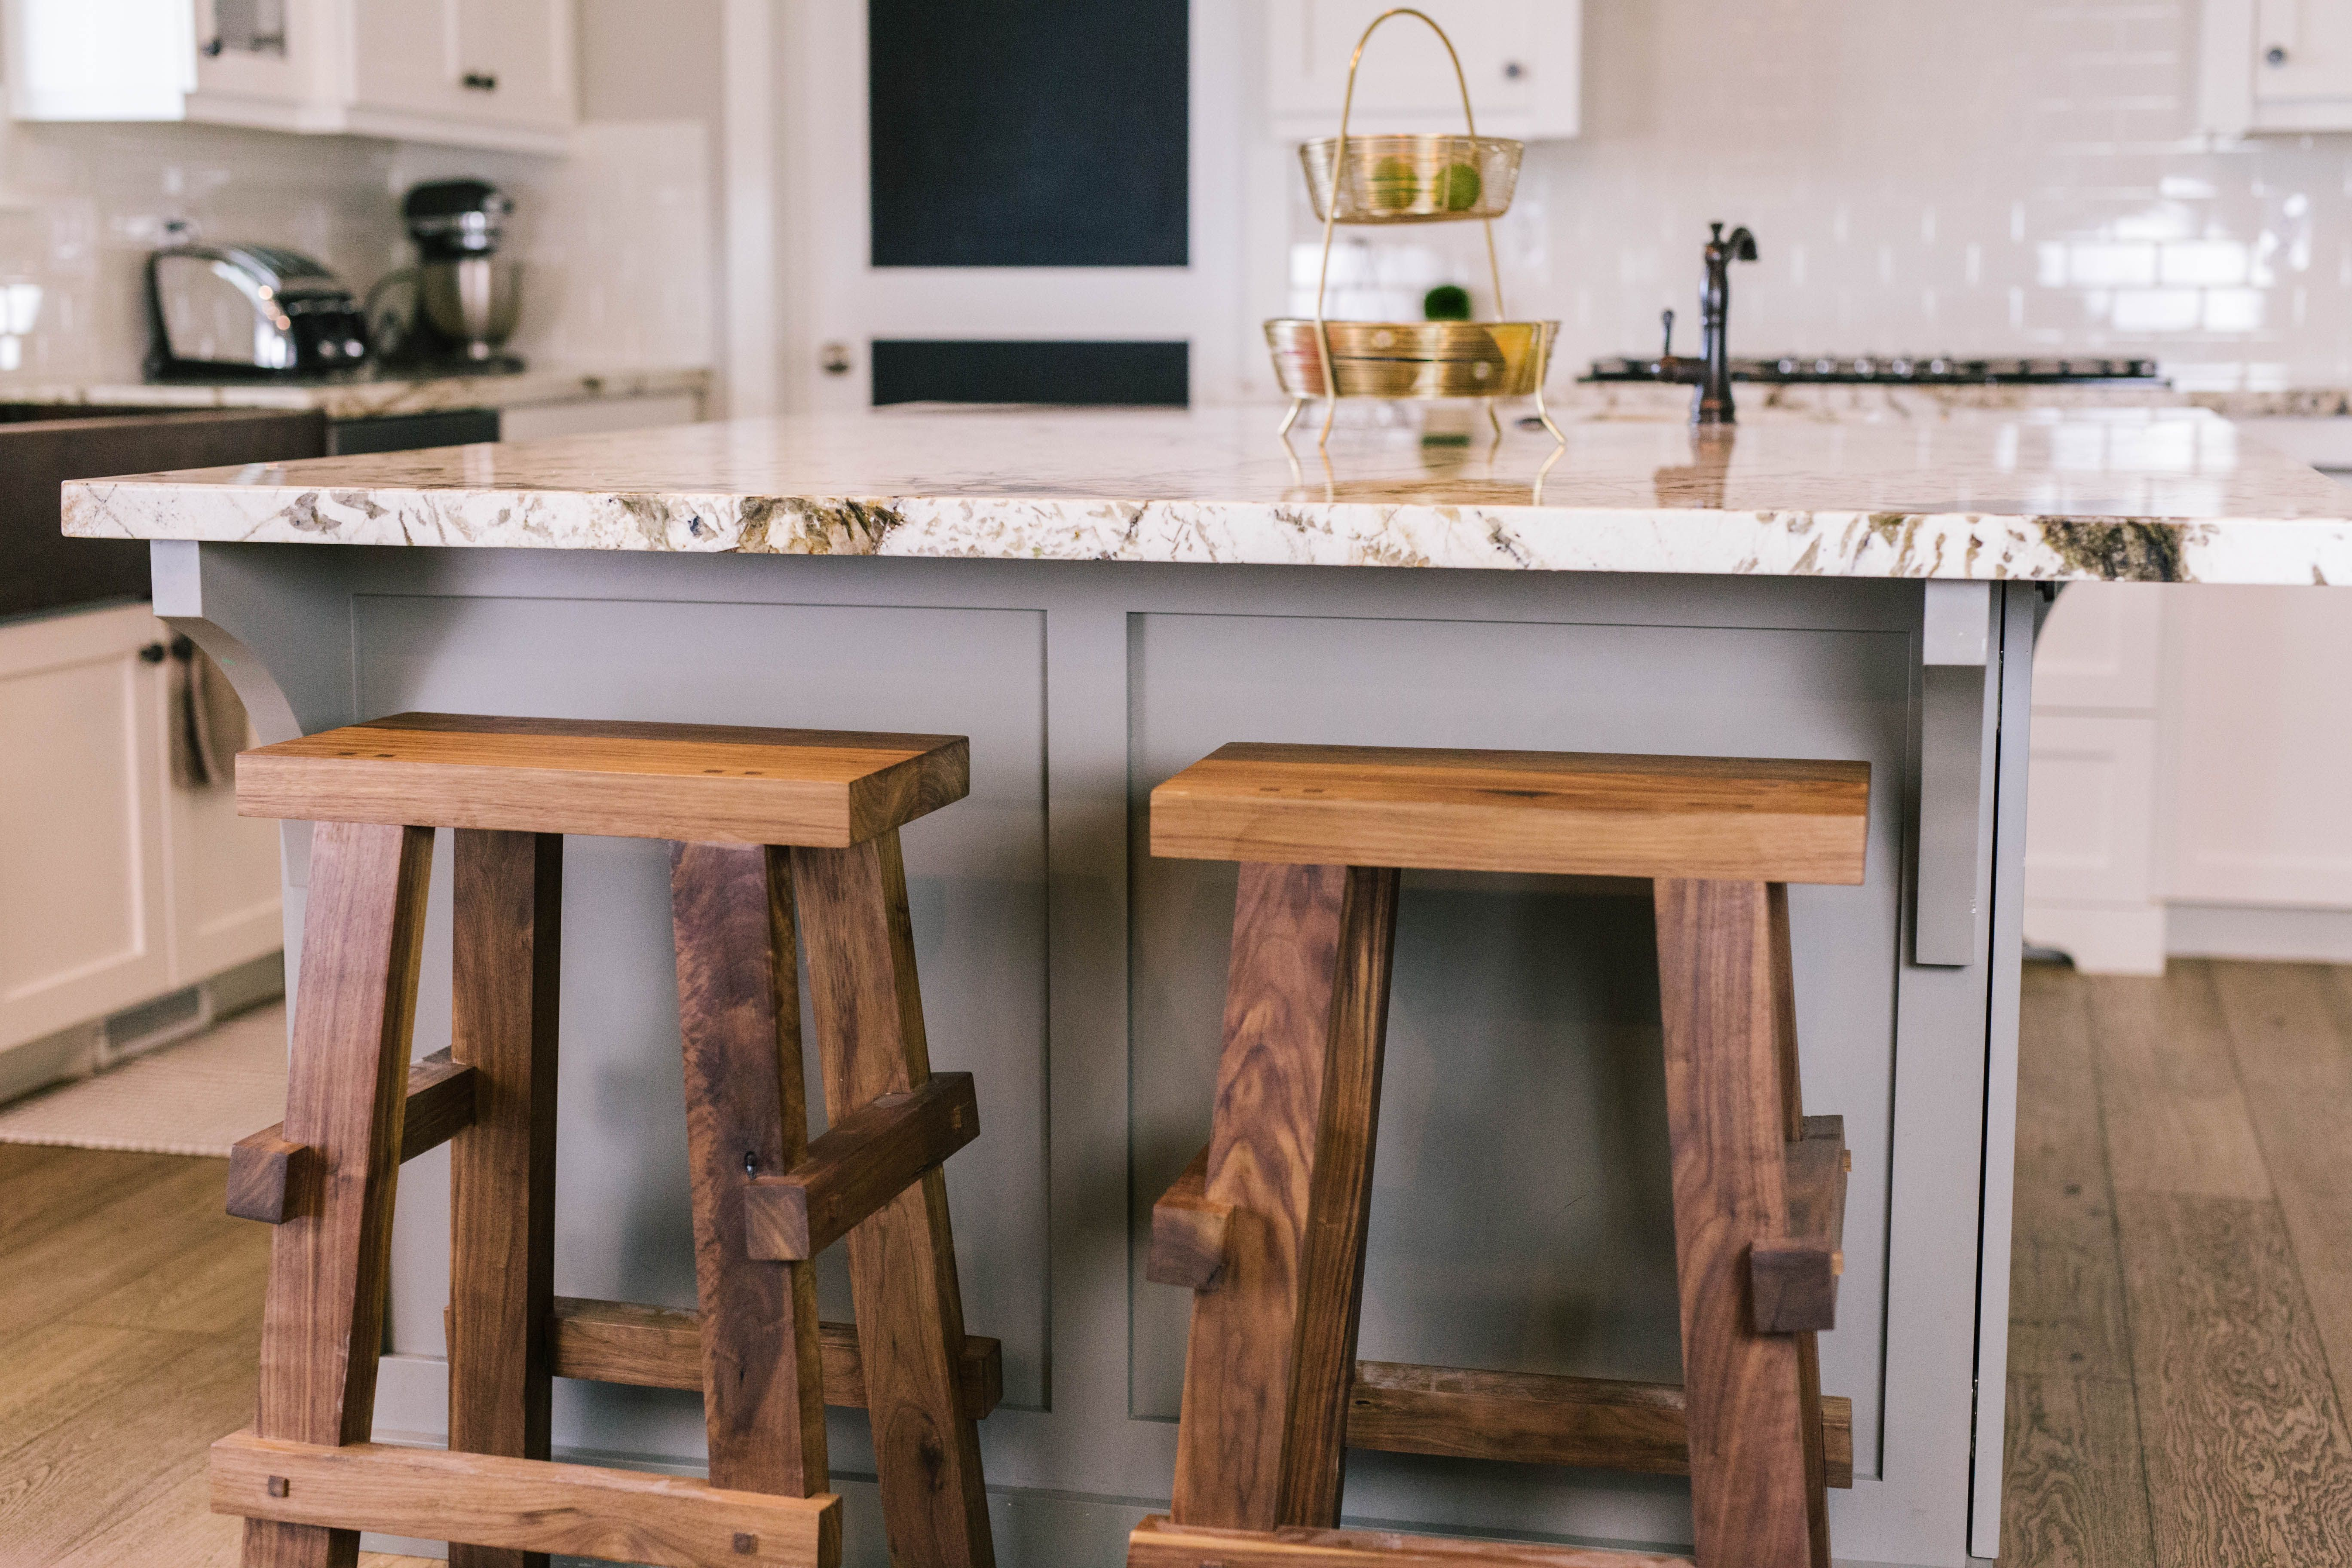 Artisan Stool | Handcrafted Furniture | Artisan Hardware